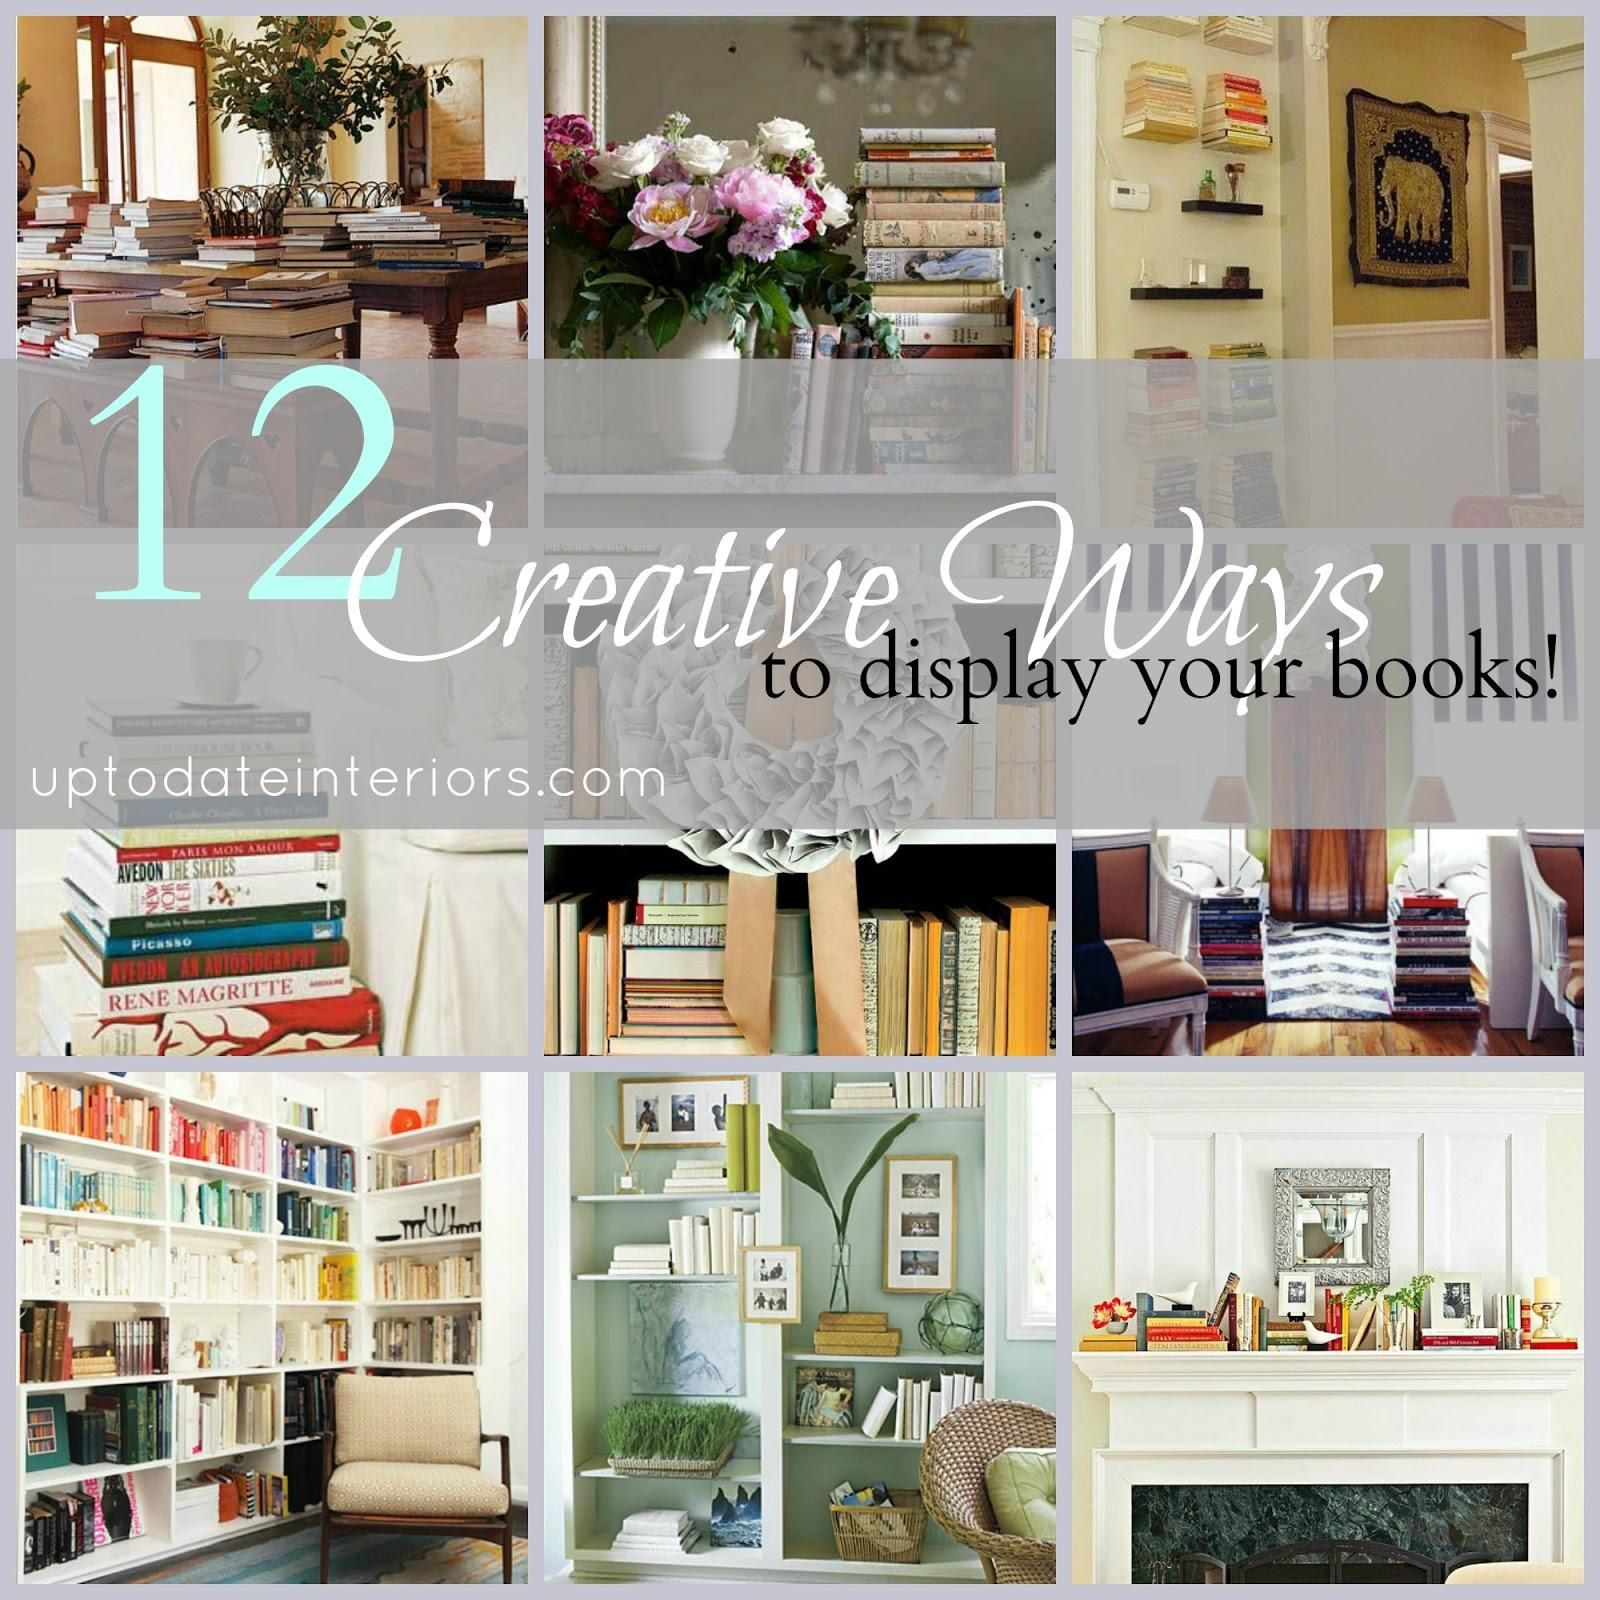 6 Ideas On How To Display Your Home Accessories: 10 Creative Ways To Decorate With Books